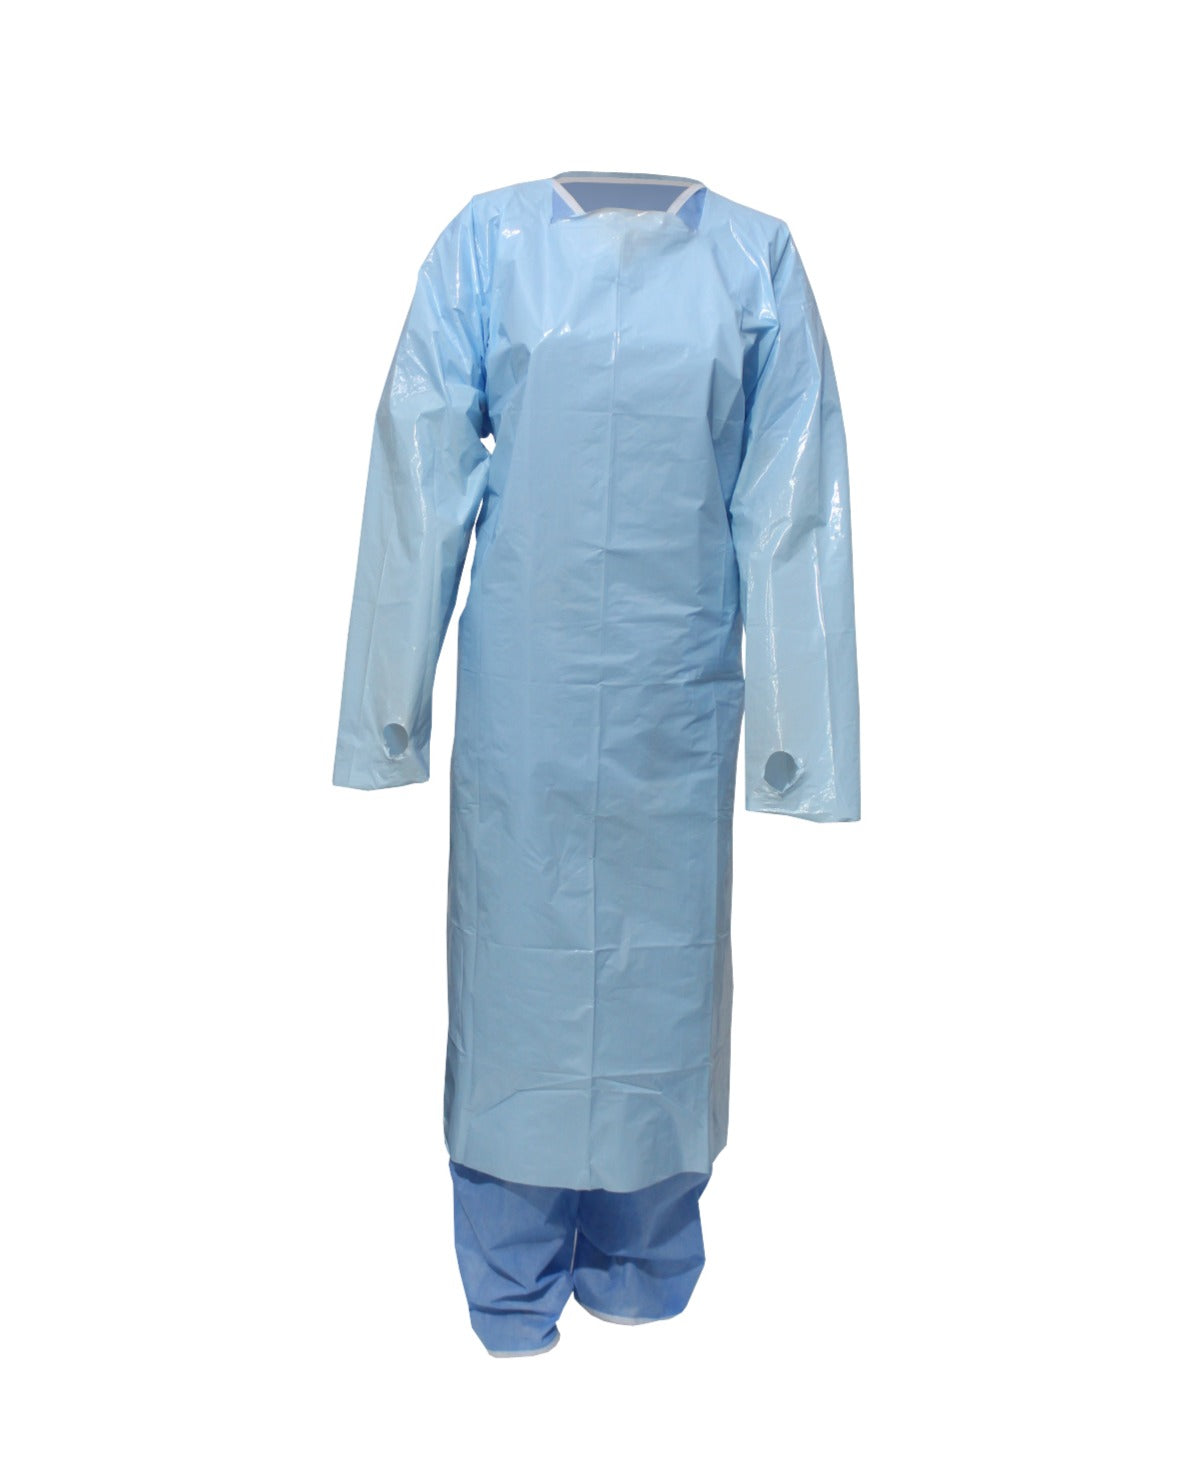 Thumb Loop Polythene Gown